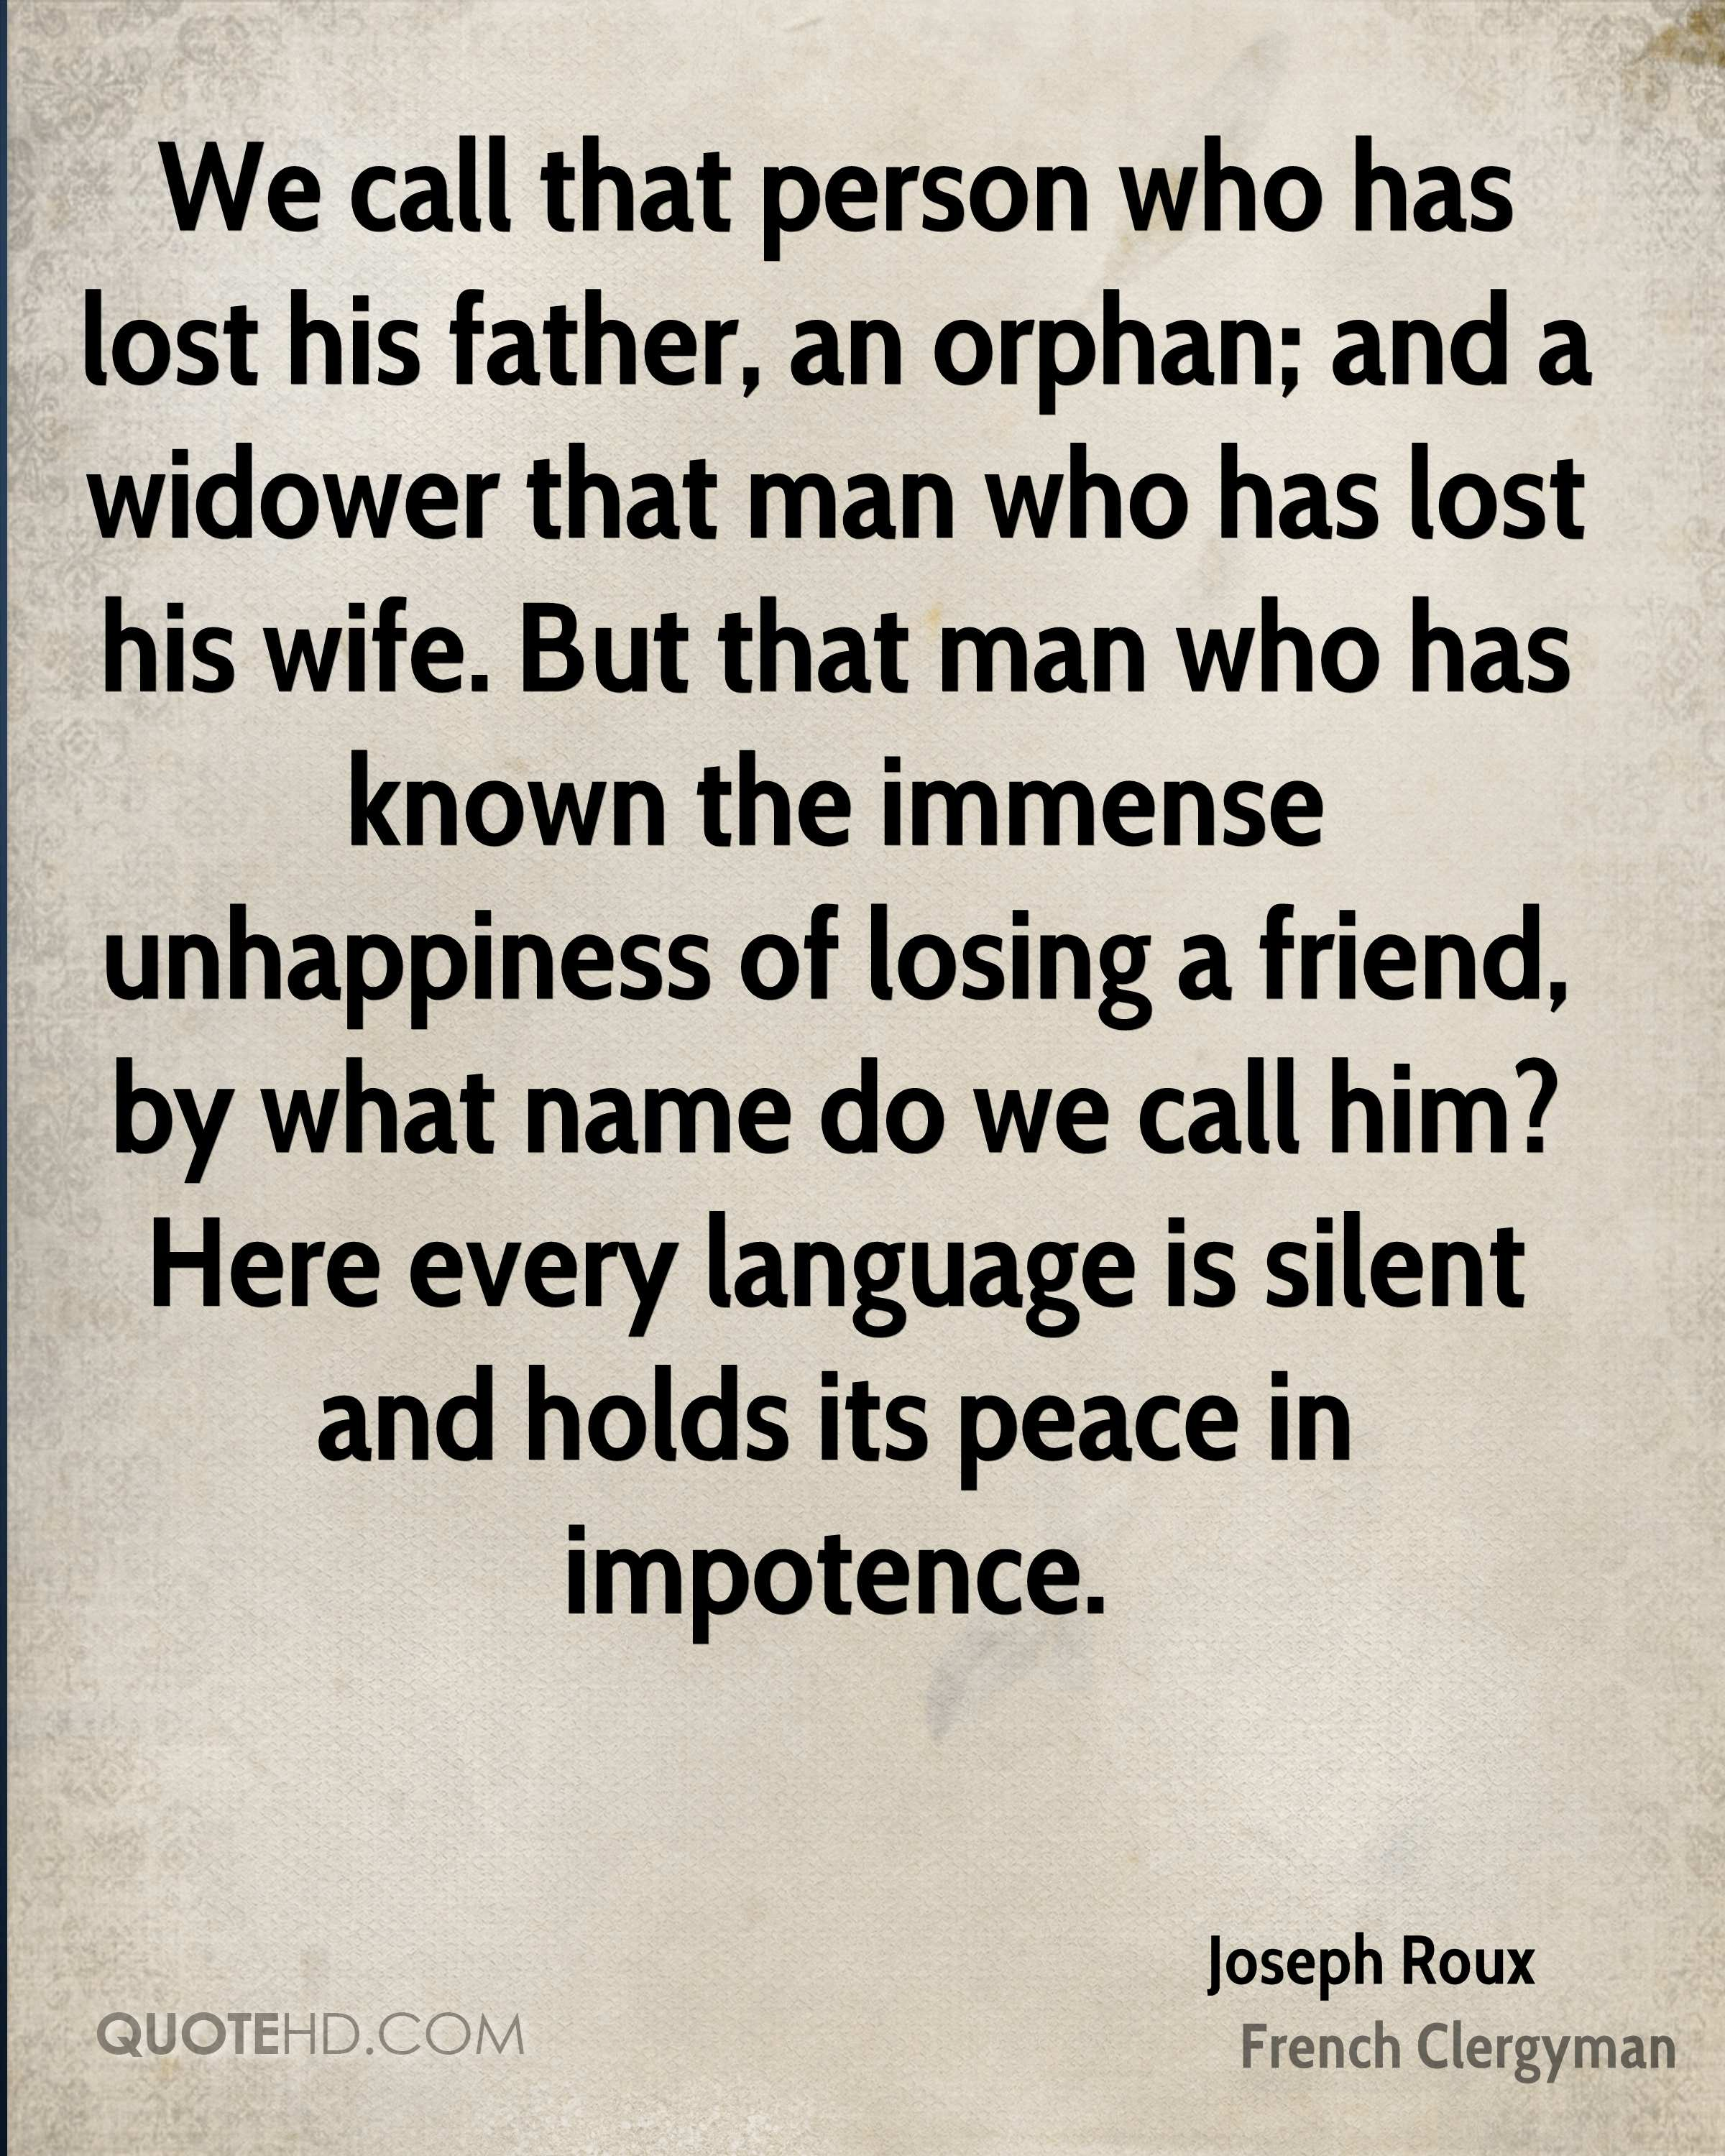 We call that person who has lost his father, an orphan; and a widower that man who has lost his wife. But that man who has known the immense unhappiness of losing a friend, by what name do we call him? Here every language is silent and holds its peace in impotence.